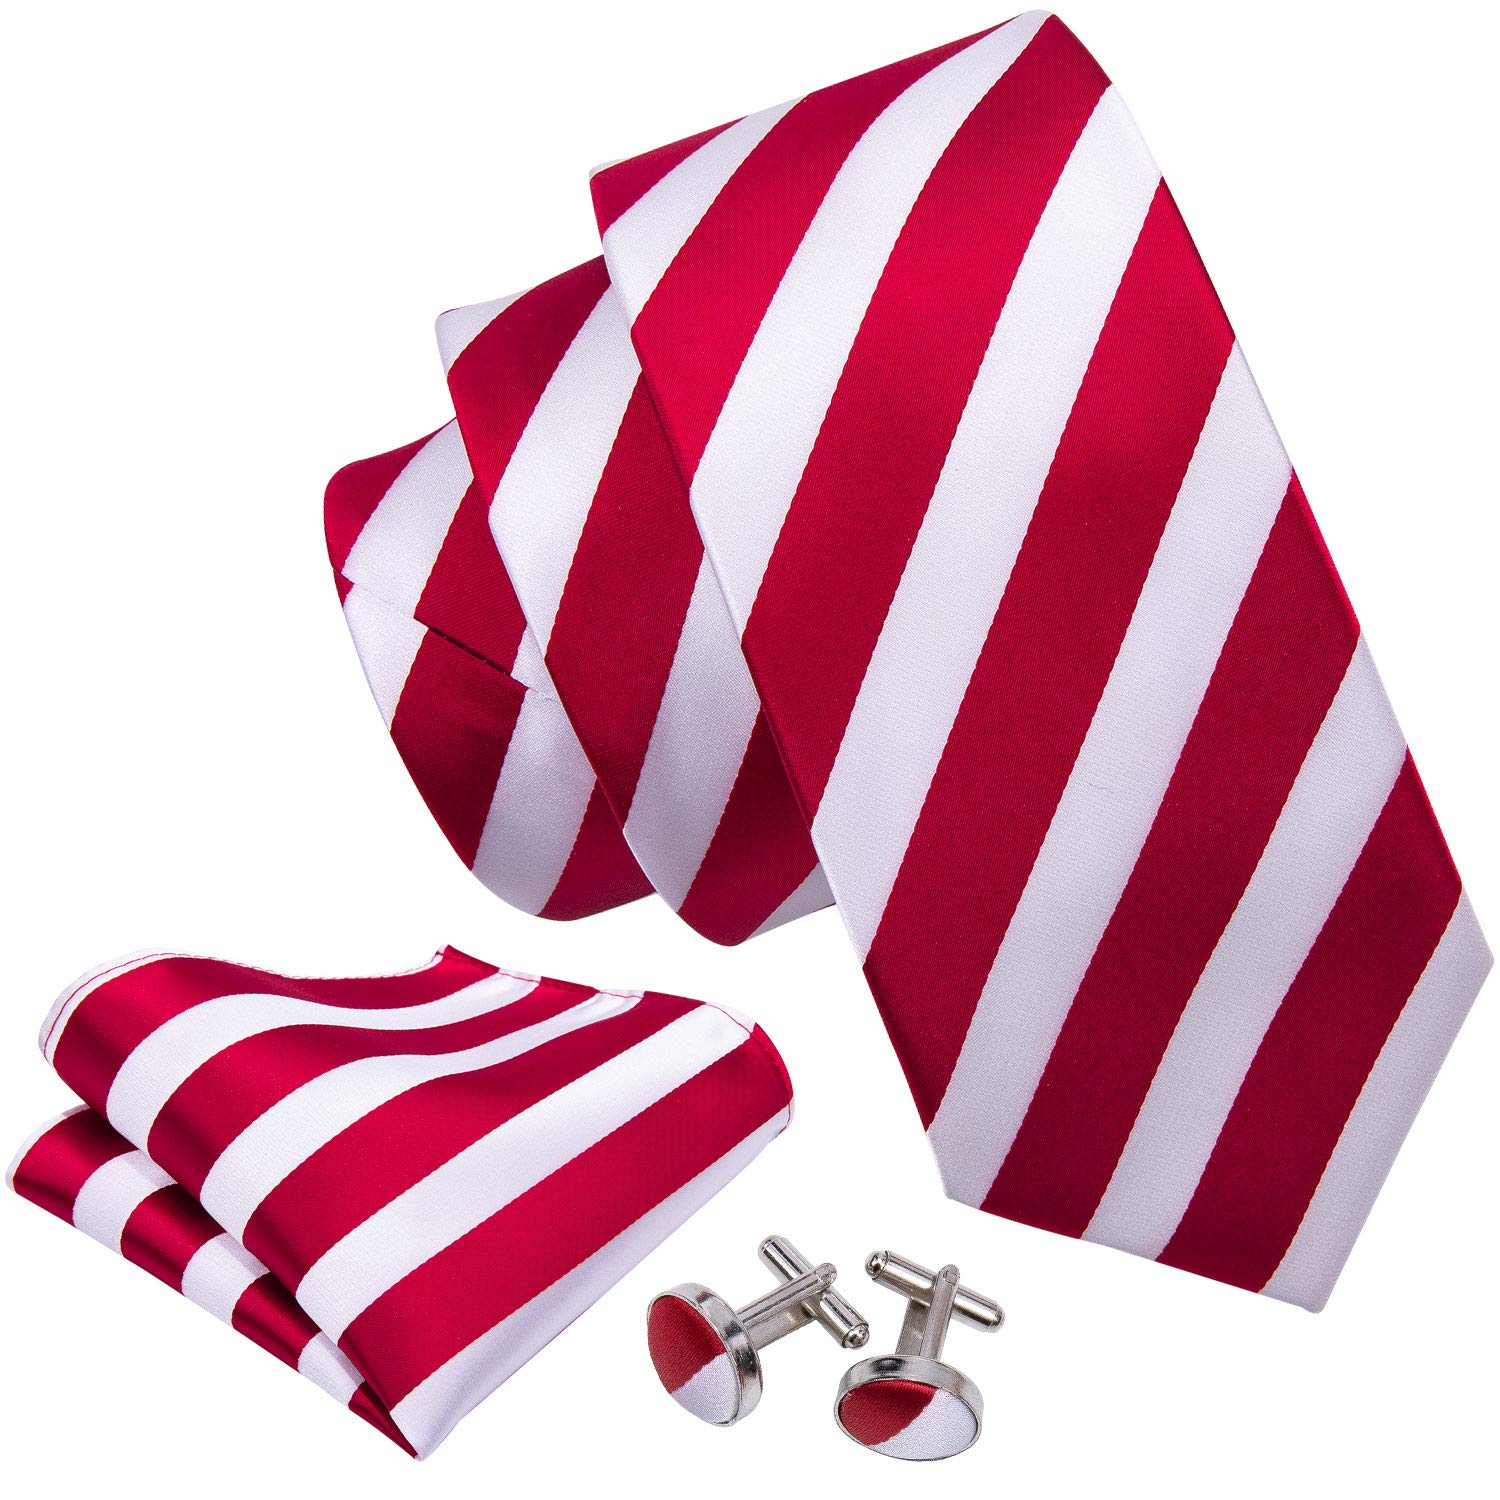 180629b53c61 Wang Mens Ties Classic Stripe Tie Set for Men Silk Woven Hanky Cufflinks  product